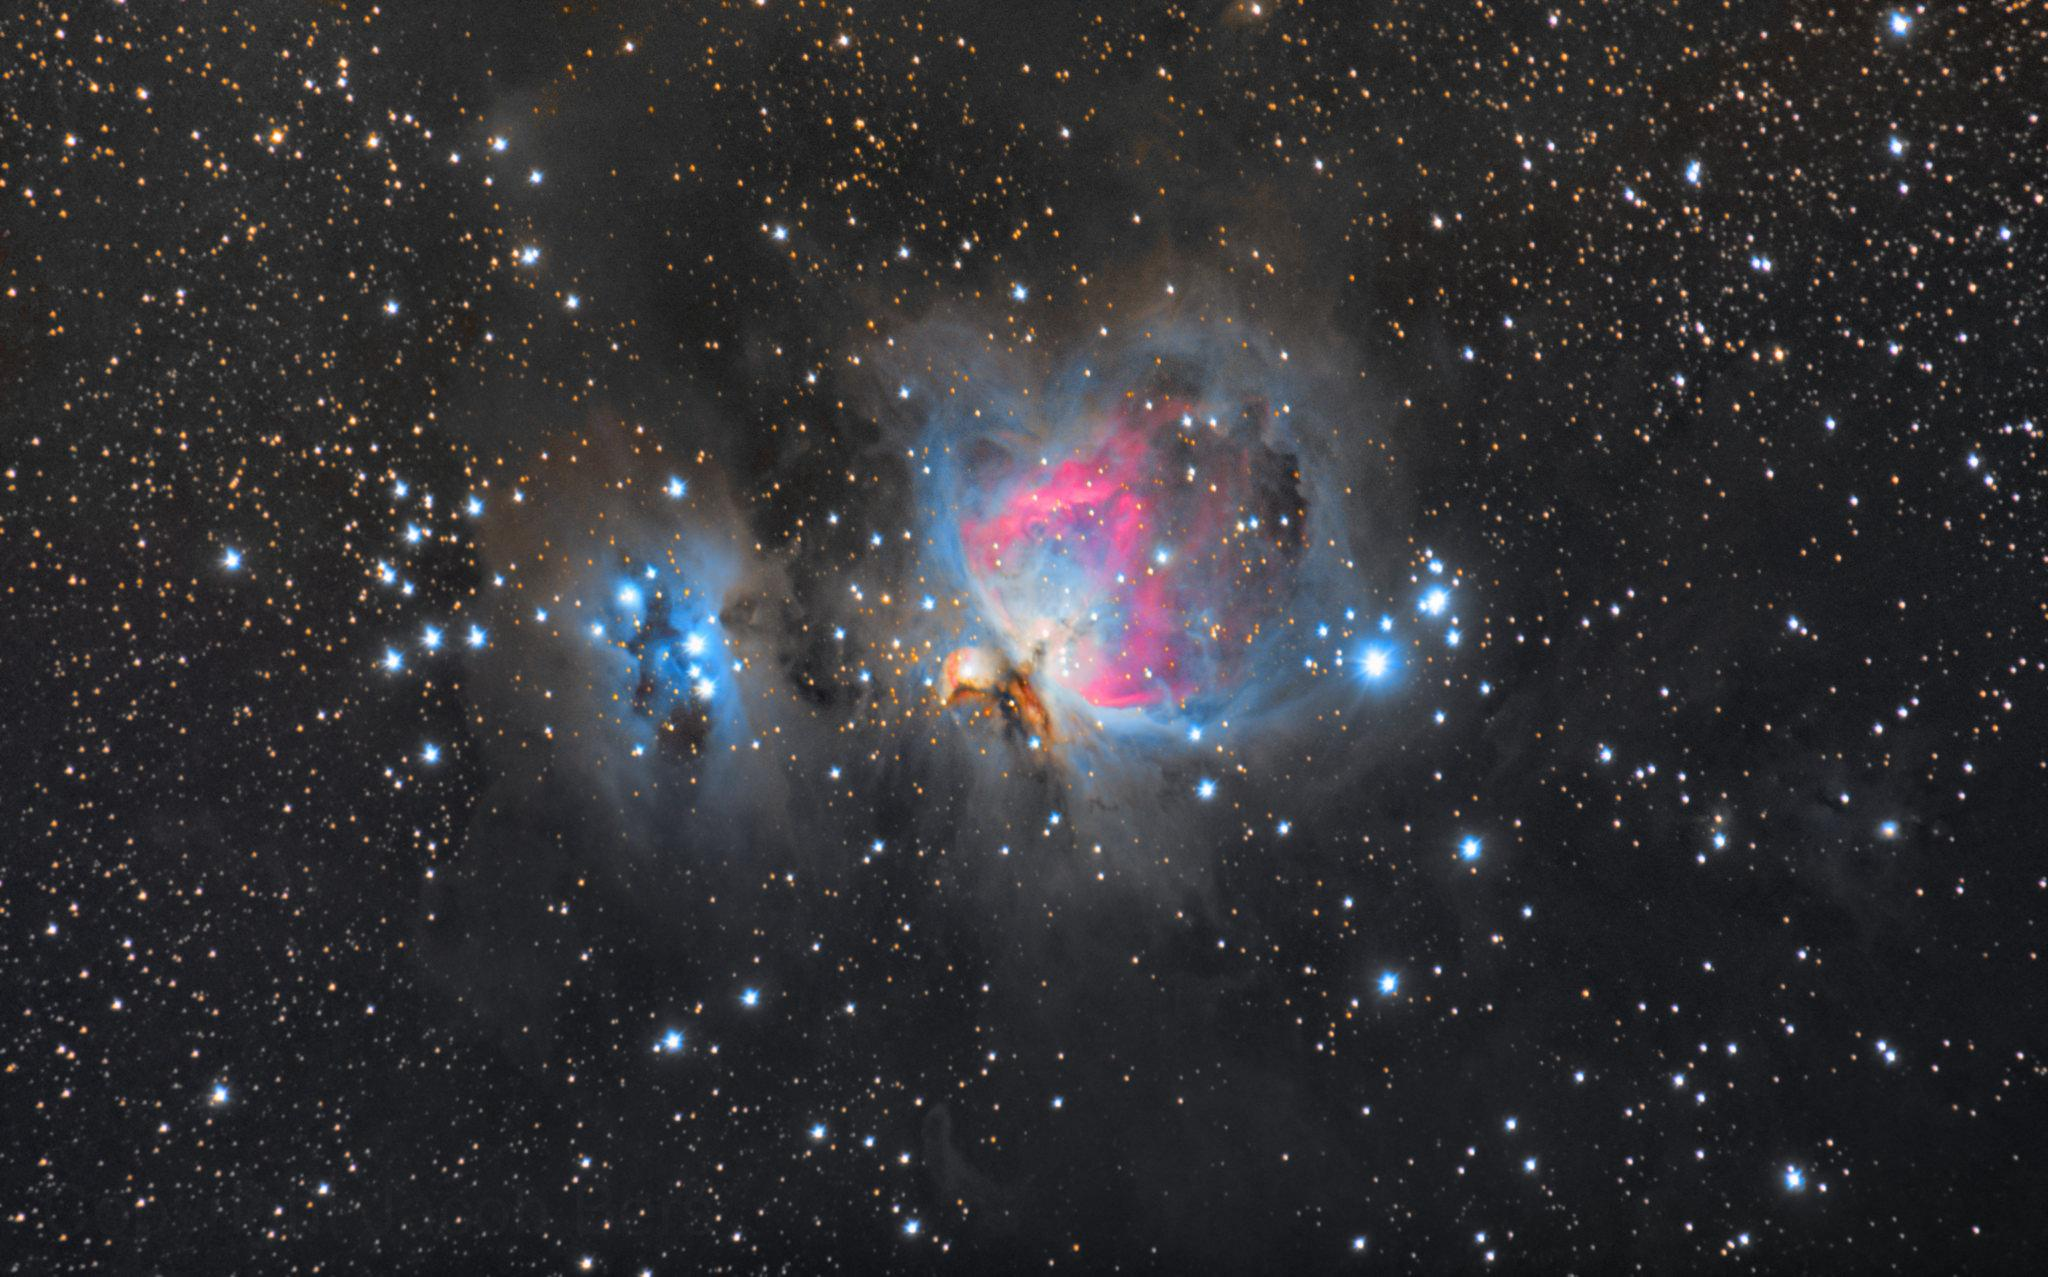 """Senior Jacob Bers's astrophotography featured at """"Point of View"""" exhibit"""